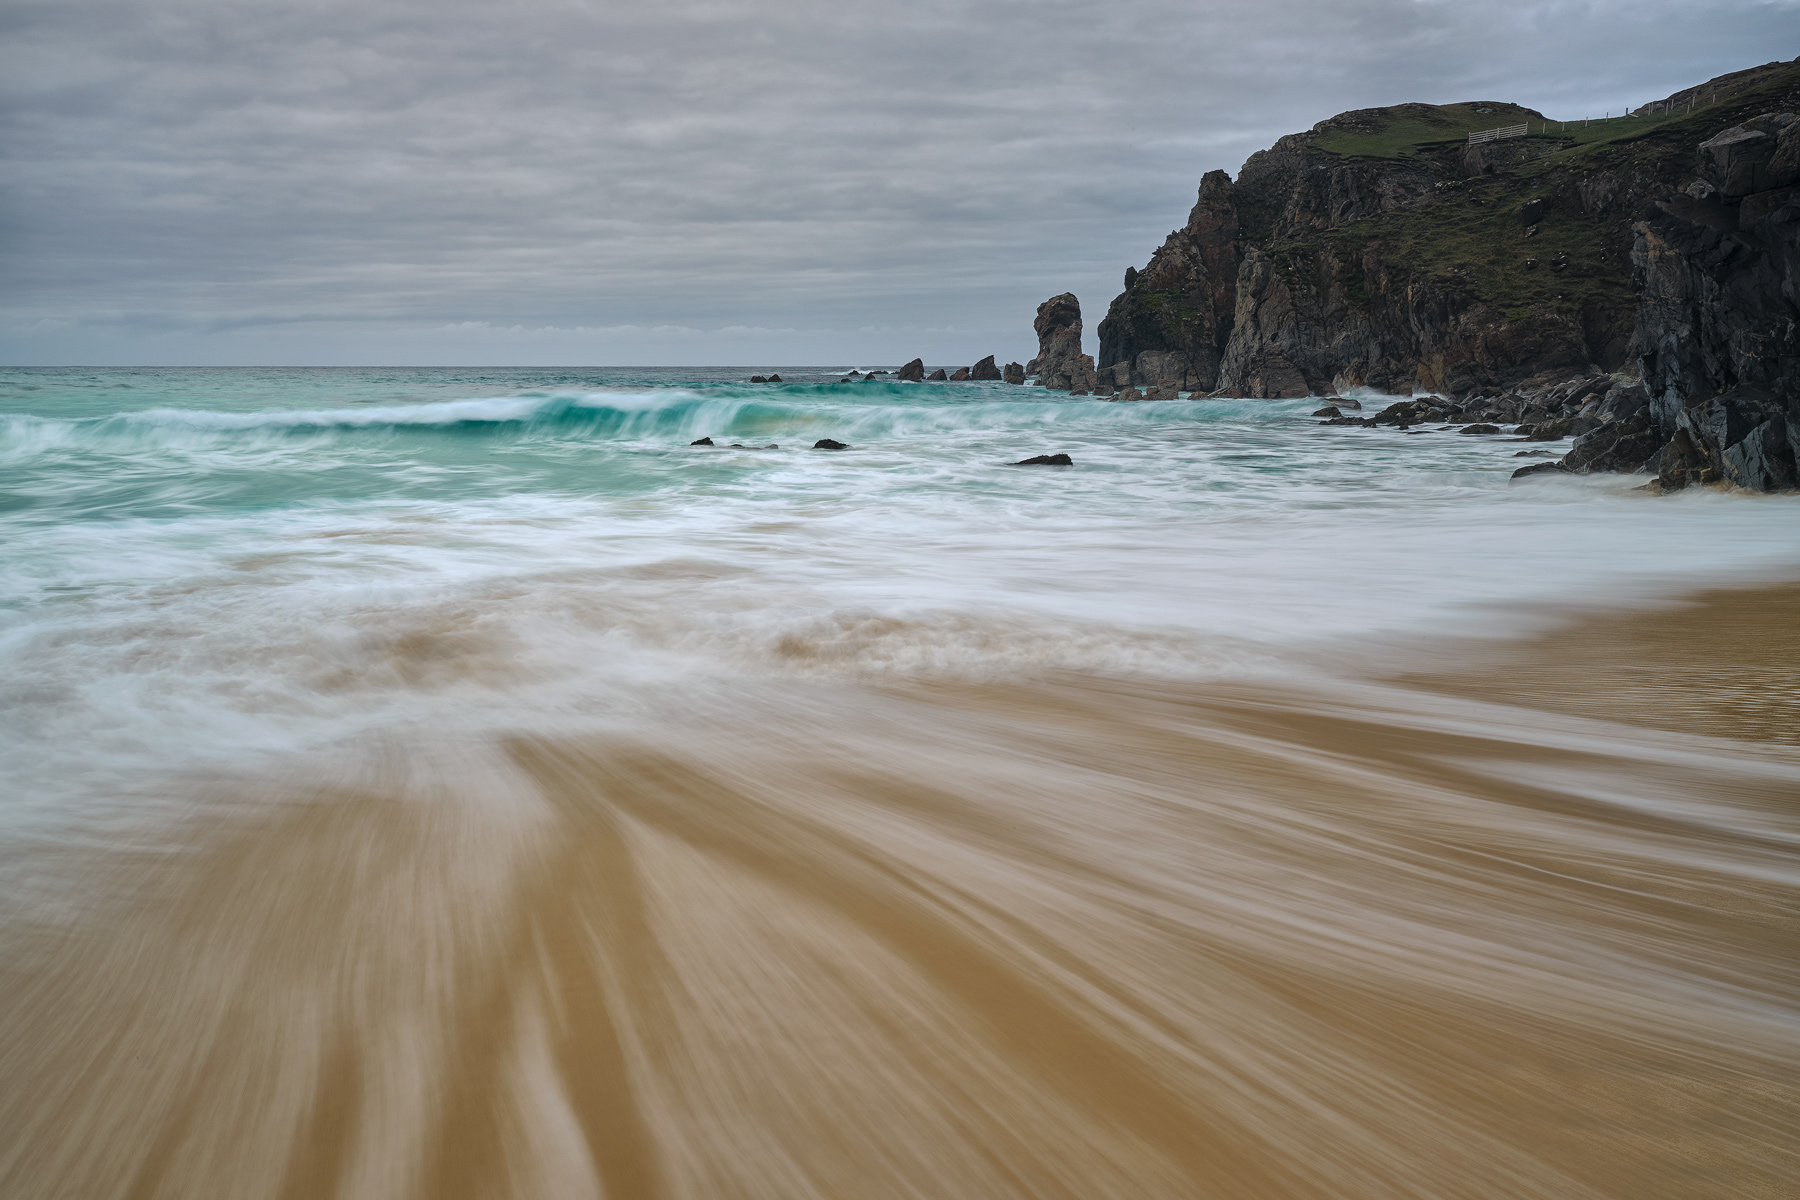 On the other side of Dail Mhor's golden beach on the west coast of Lewis are the sea stacks pummeled by a rough sea.